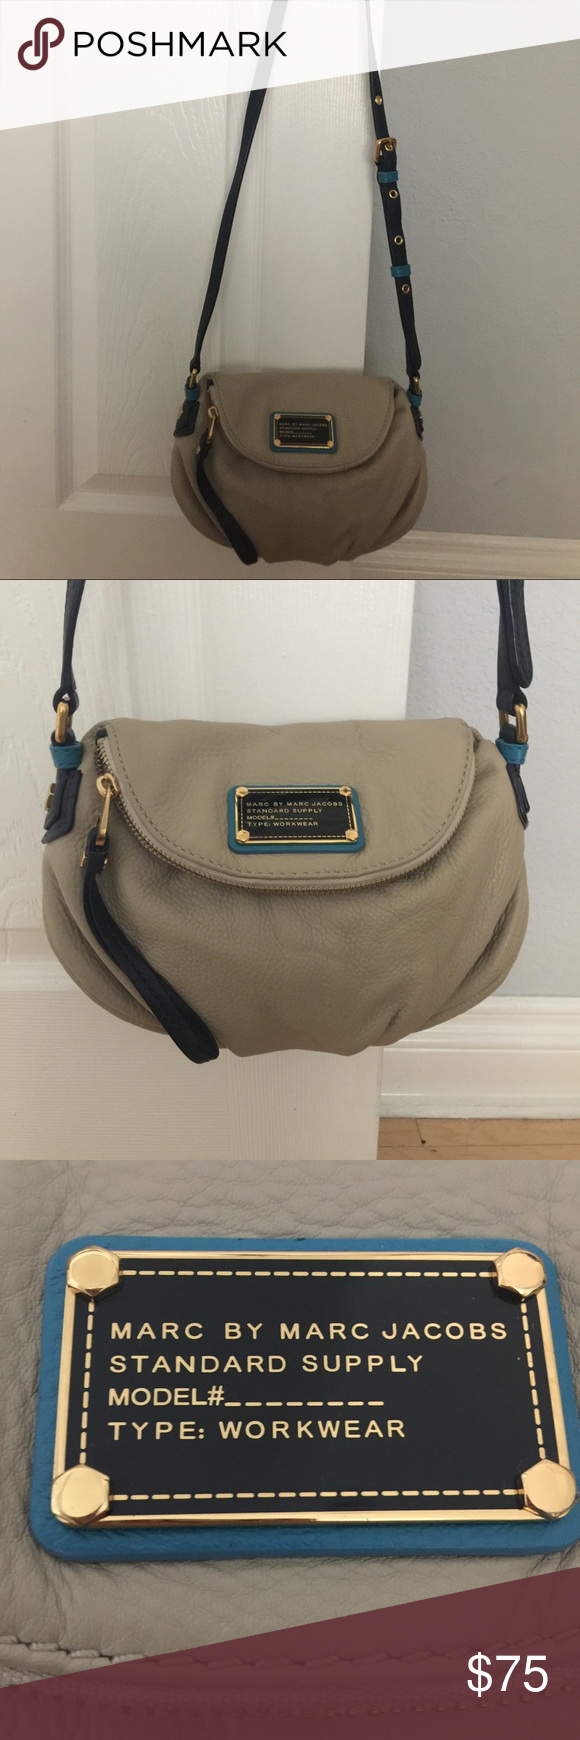 Marc by Marc Jacobs Crossbody Bag Mini Natasha Two tone Khacki/Blue color, soft pebble leather, magnetic closure, fabric lining, one interior zip and two slip pockets.  Barely used. Marc by Marc Jacobs Bags Crossbody Bags